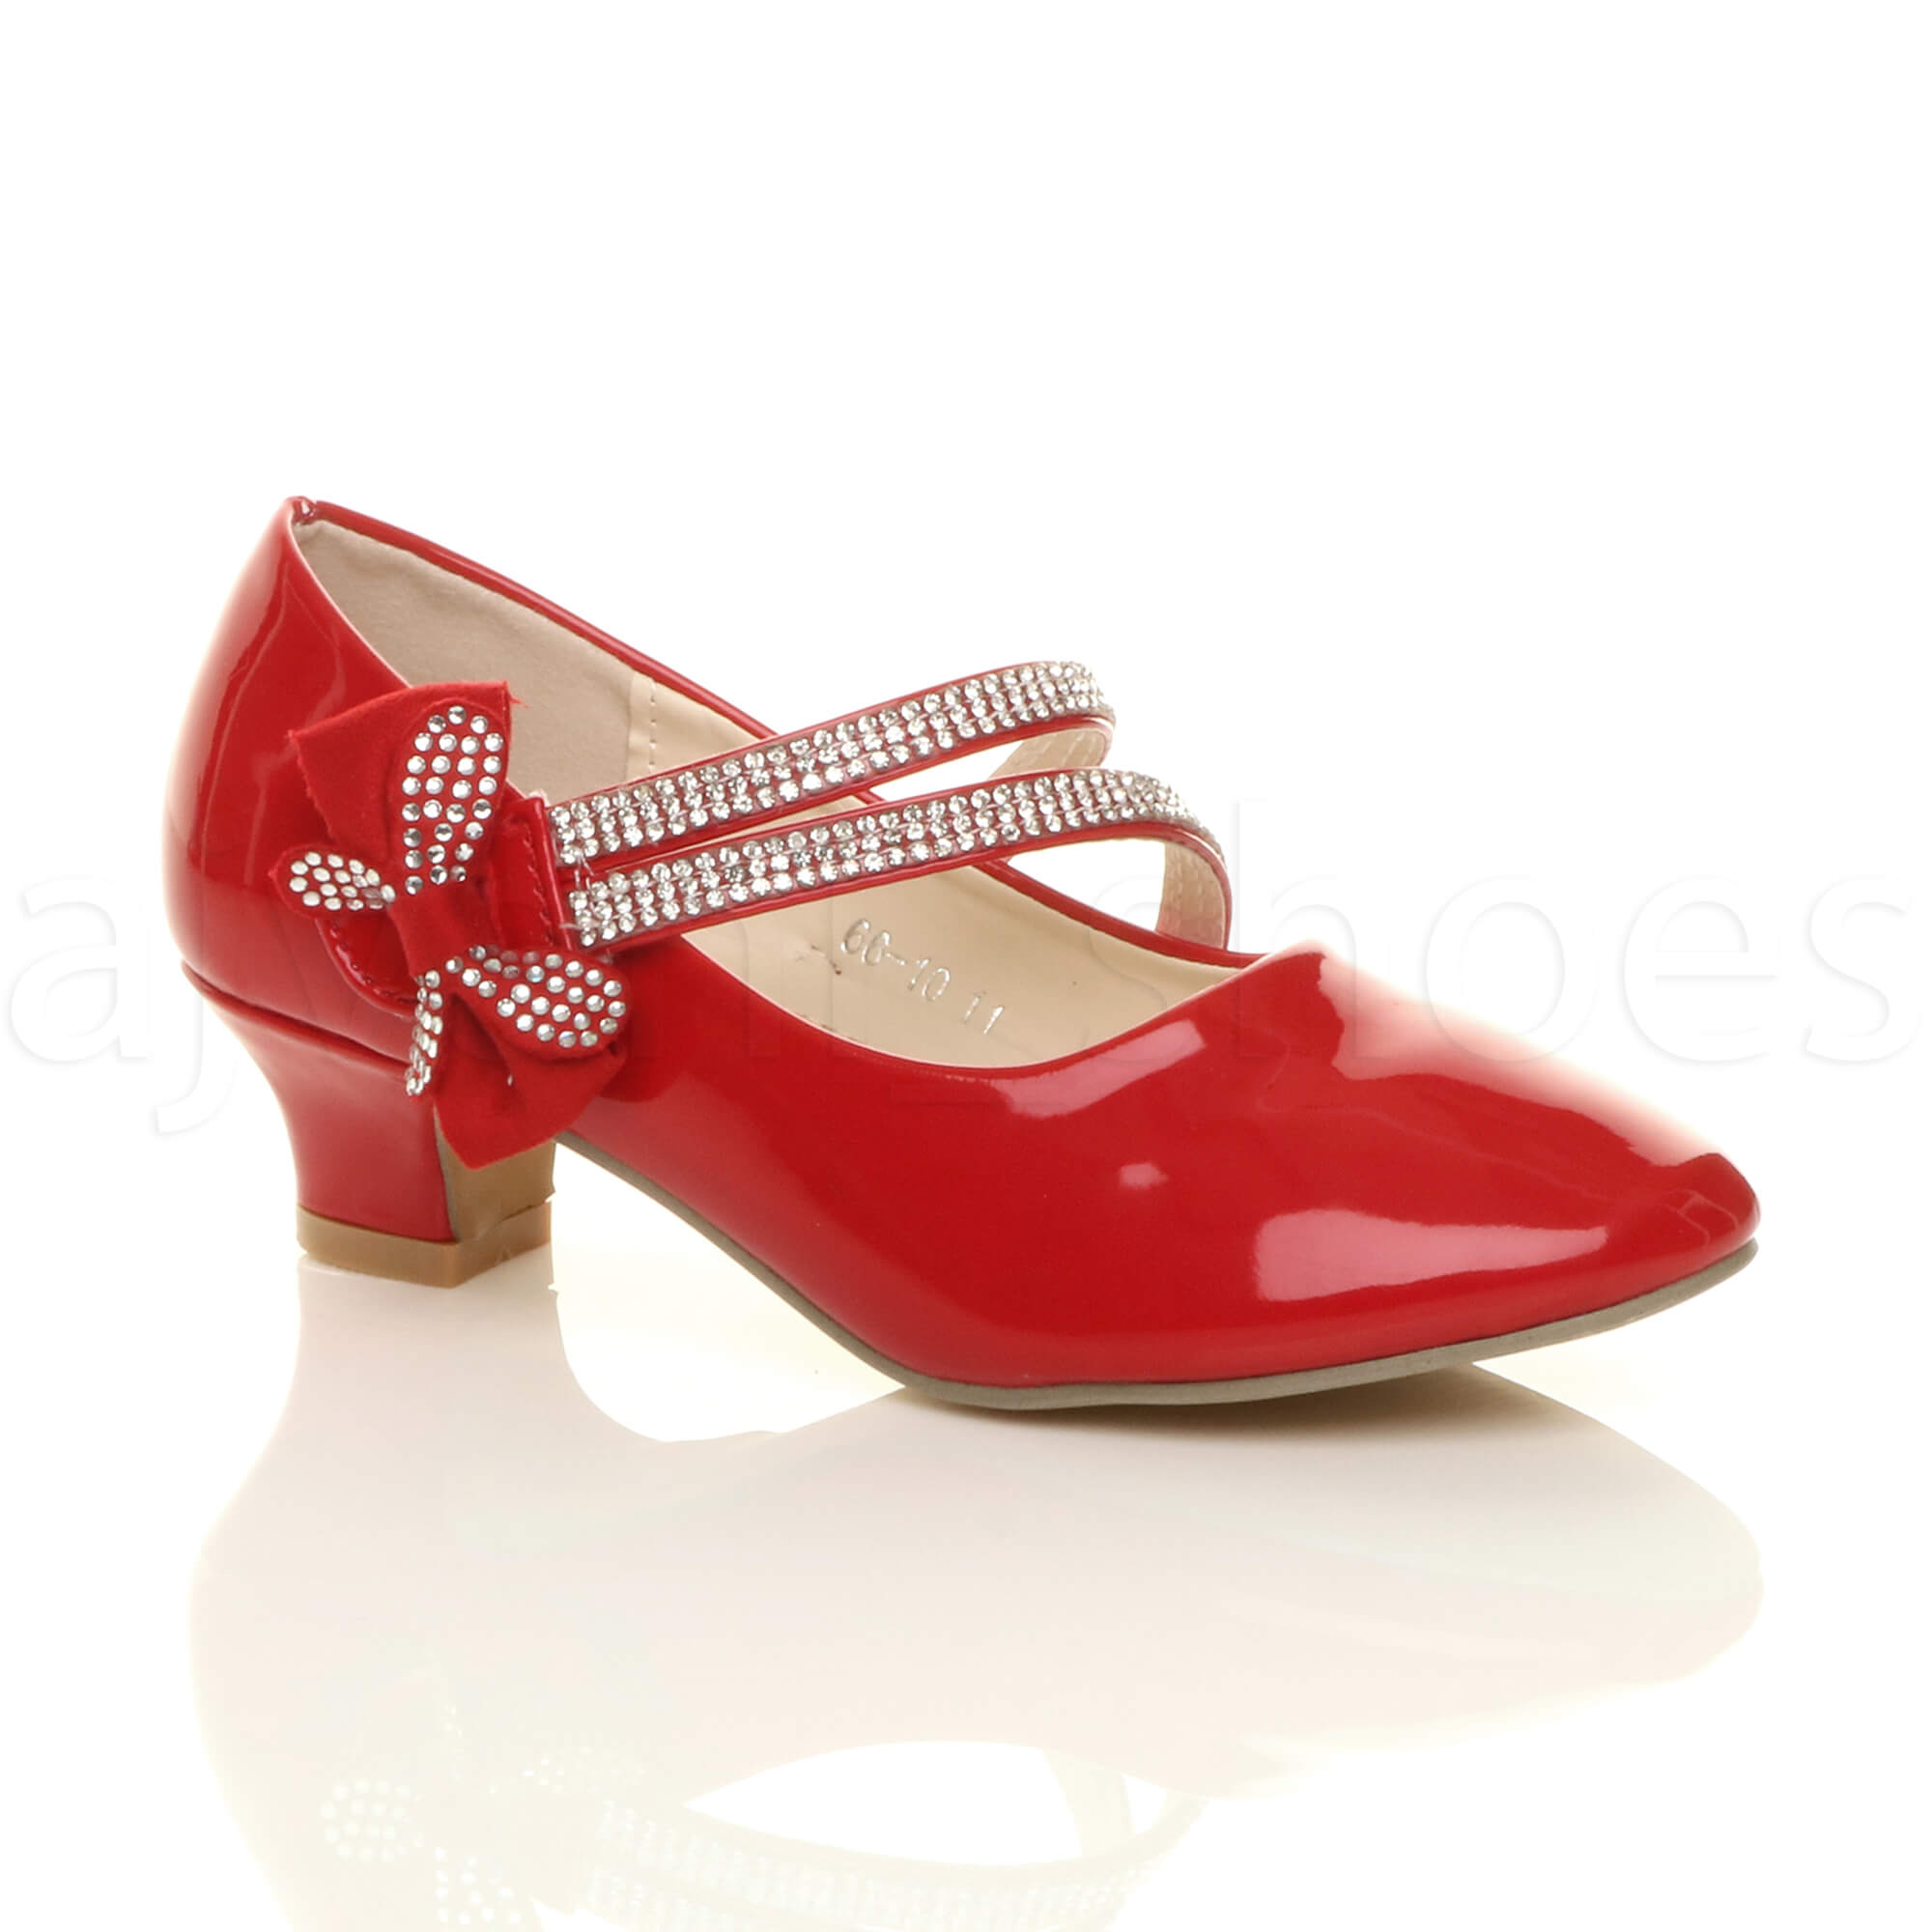 0487cf8e4b3 Details about GIRLS KIDS CHILDRENS LOW HEEL STRAP BOW BRIDESMAID PARTY  FORMAL SHOES SIZE